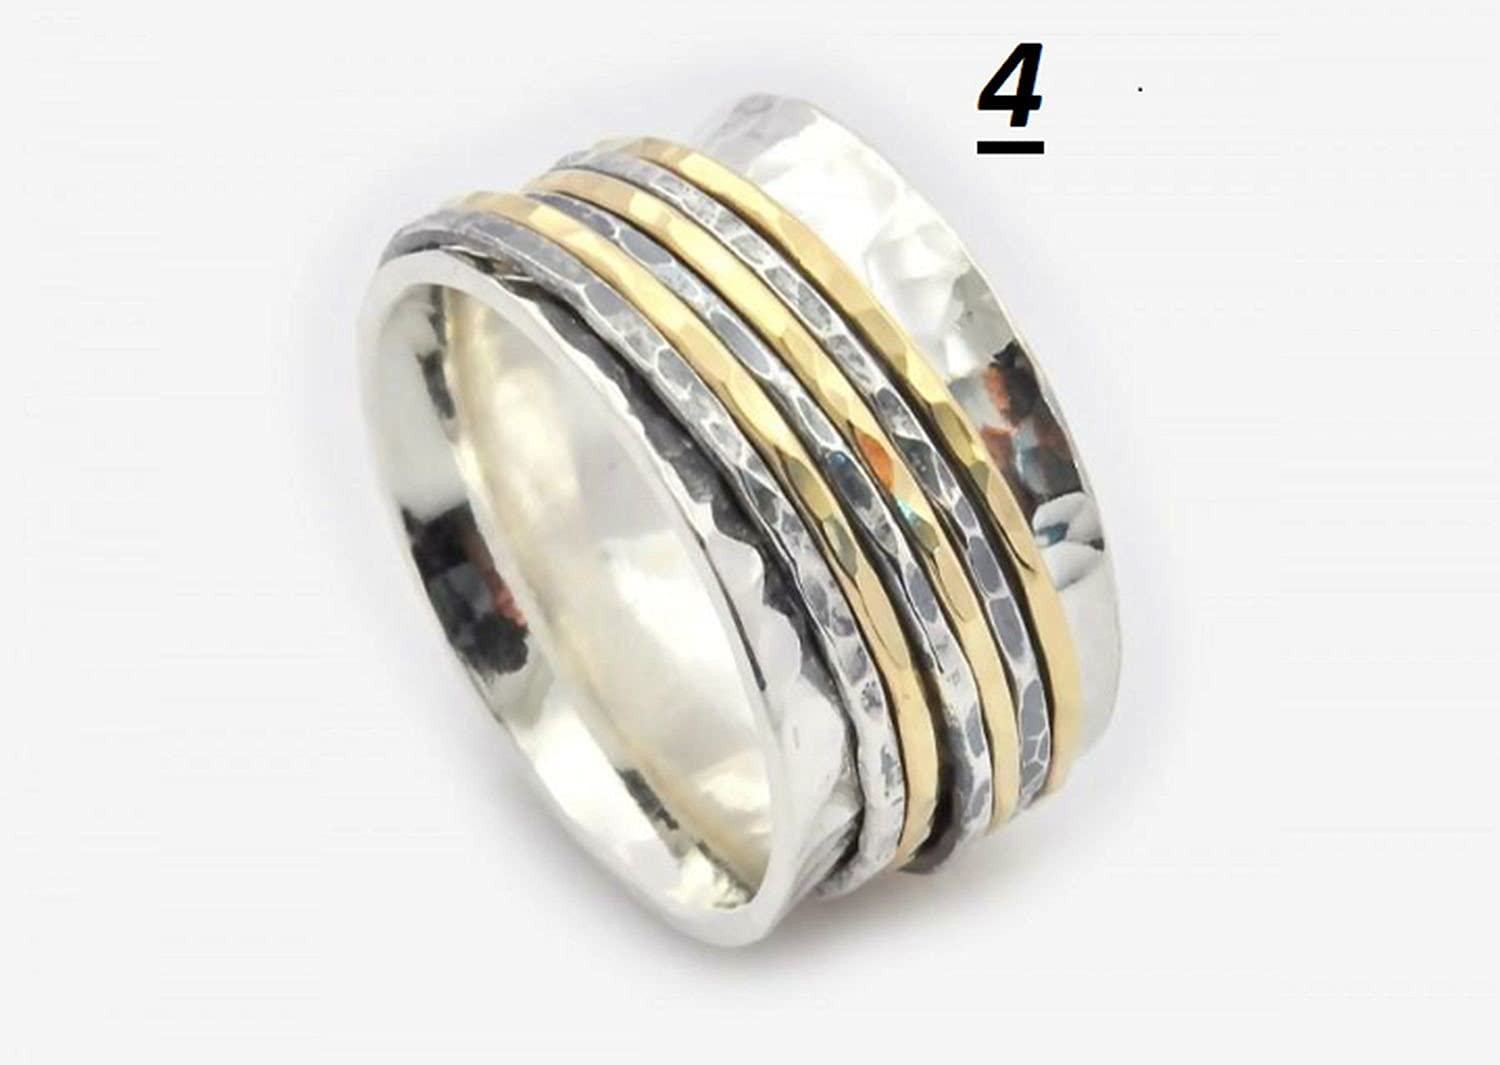 JewelsExporter Spinner Ring Narrow Silver Brass Ring with Detailing Size 10US Narrow Spinner Ring Fancy Spinning Ring